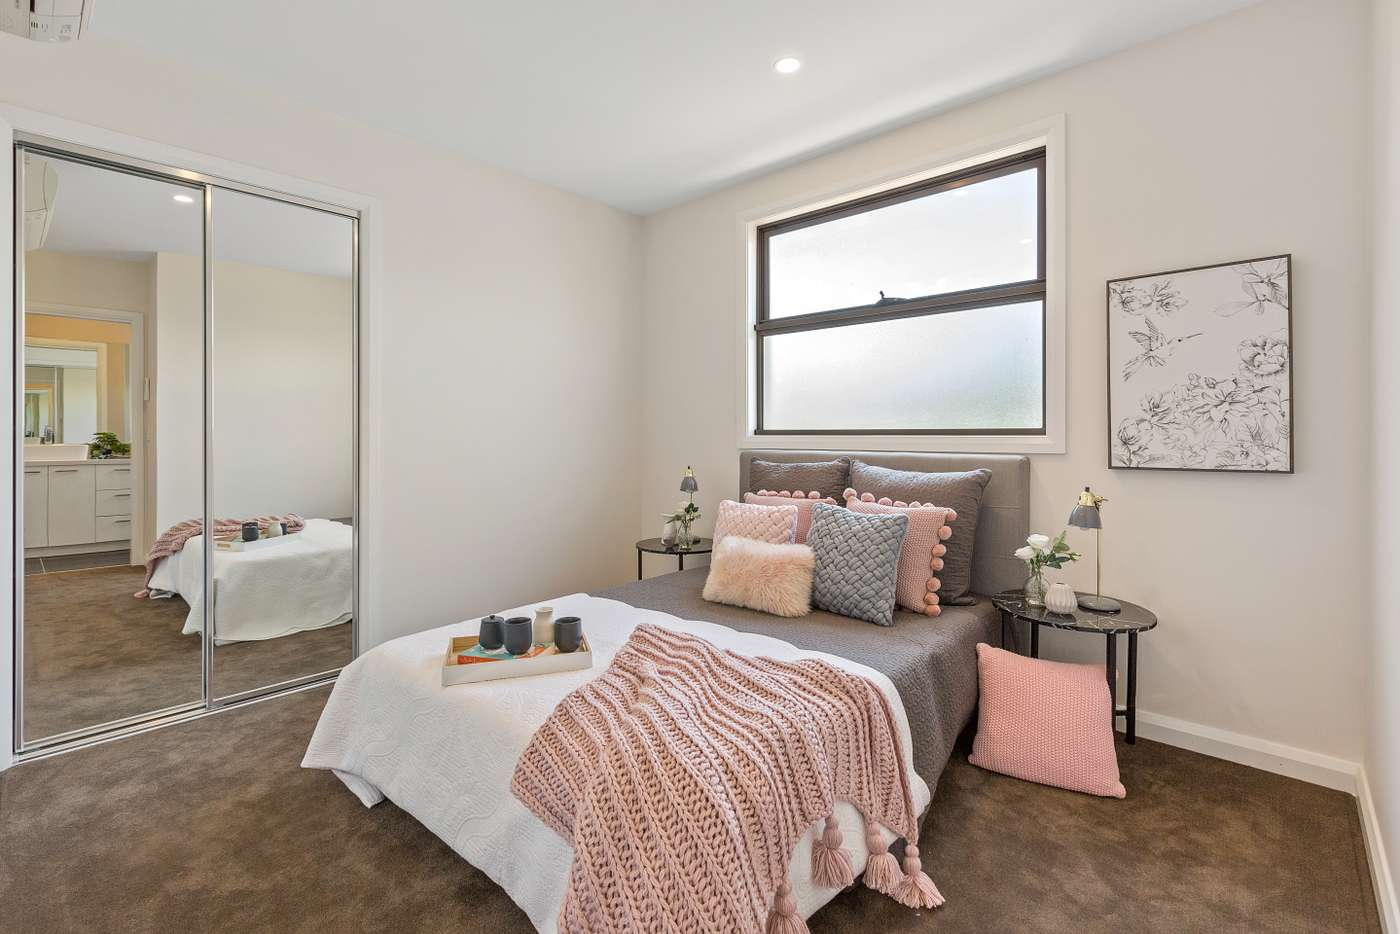 Fifth view of Homely townhouse listing, 3/24 Stonehaven Avenue, Boronia VIC 3155